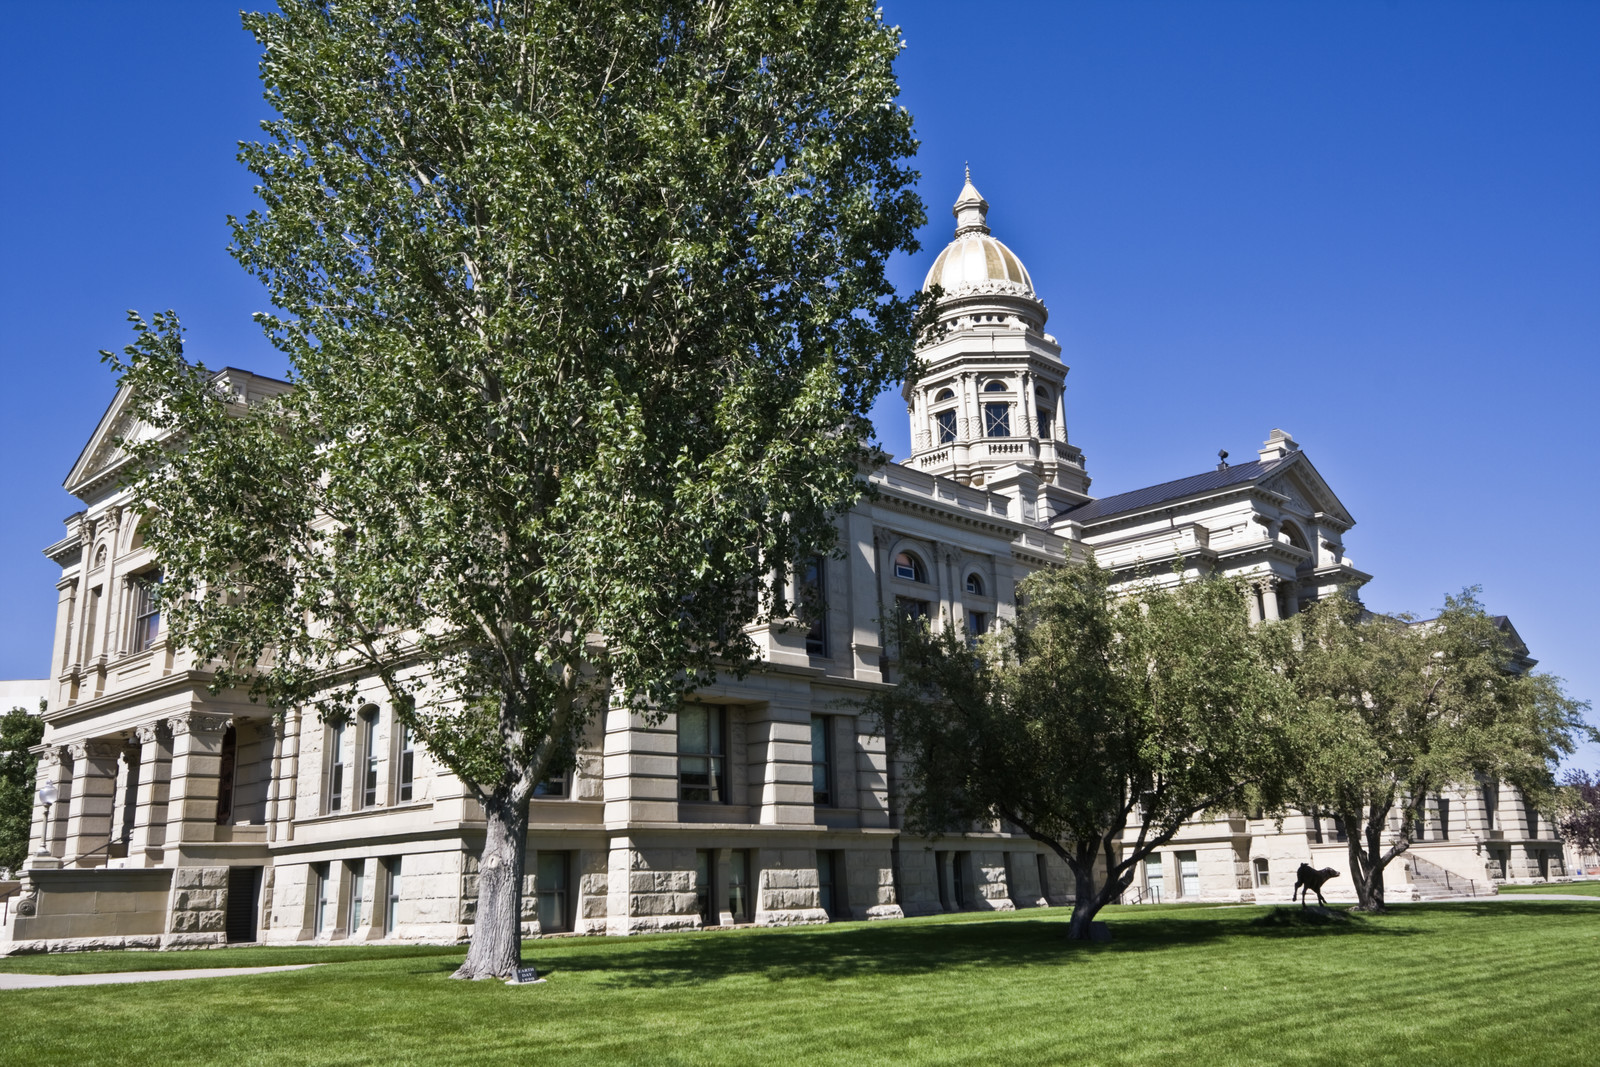 State capital of wyoming in cheyenne with trees and green grass surrounding the capital building